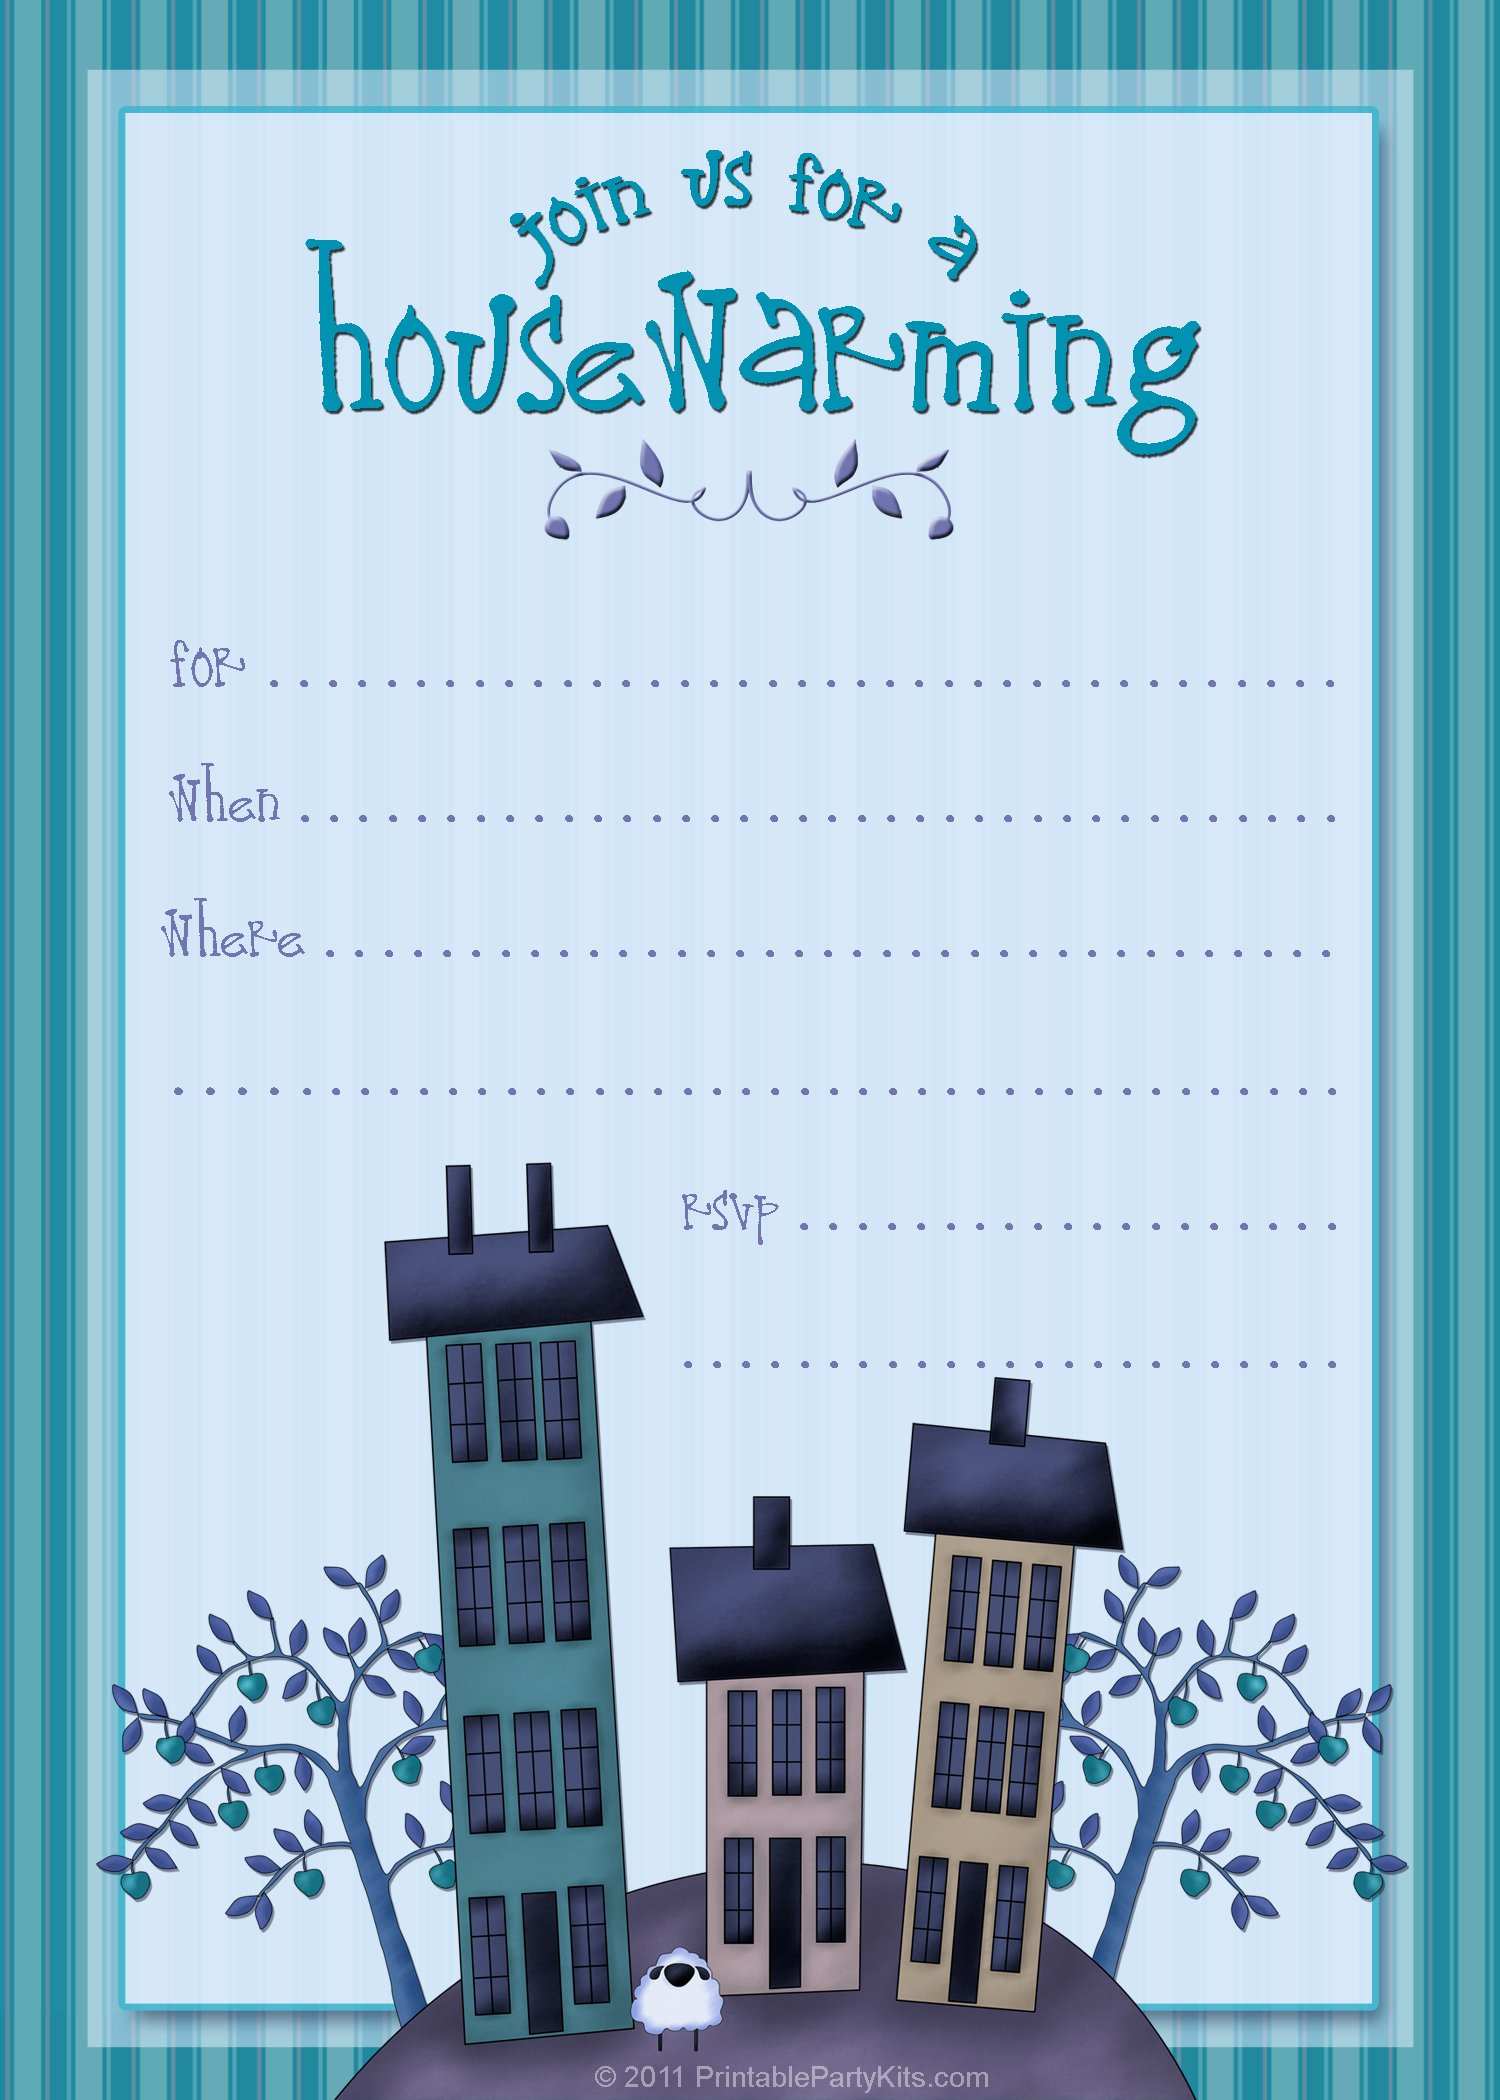 Housewarming Invitation Template Microsoft Word Lovely Free House Warming Clipart Clipground